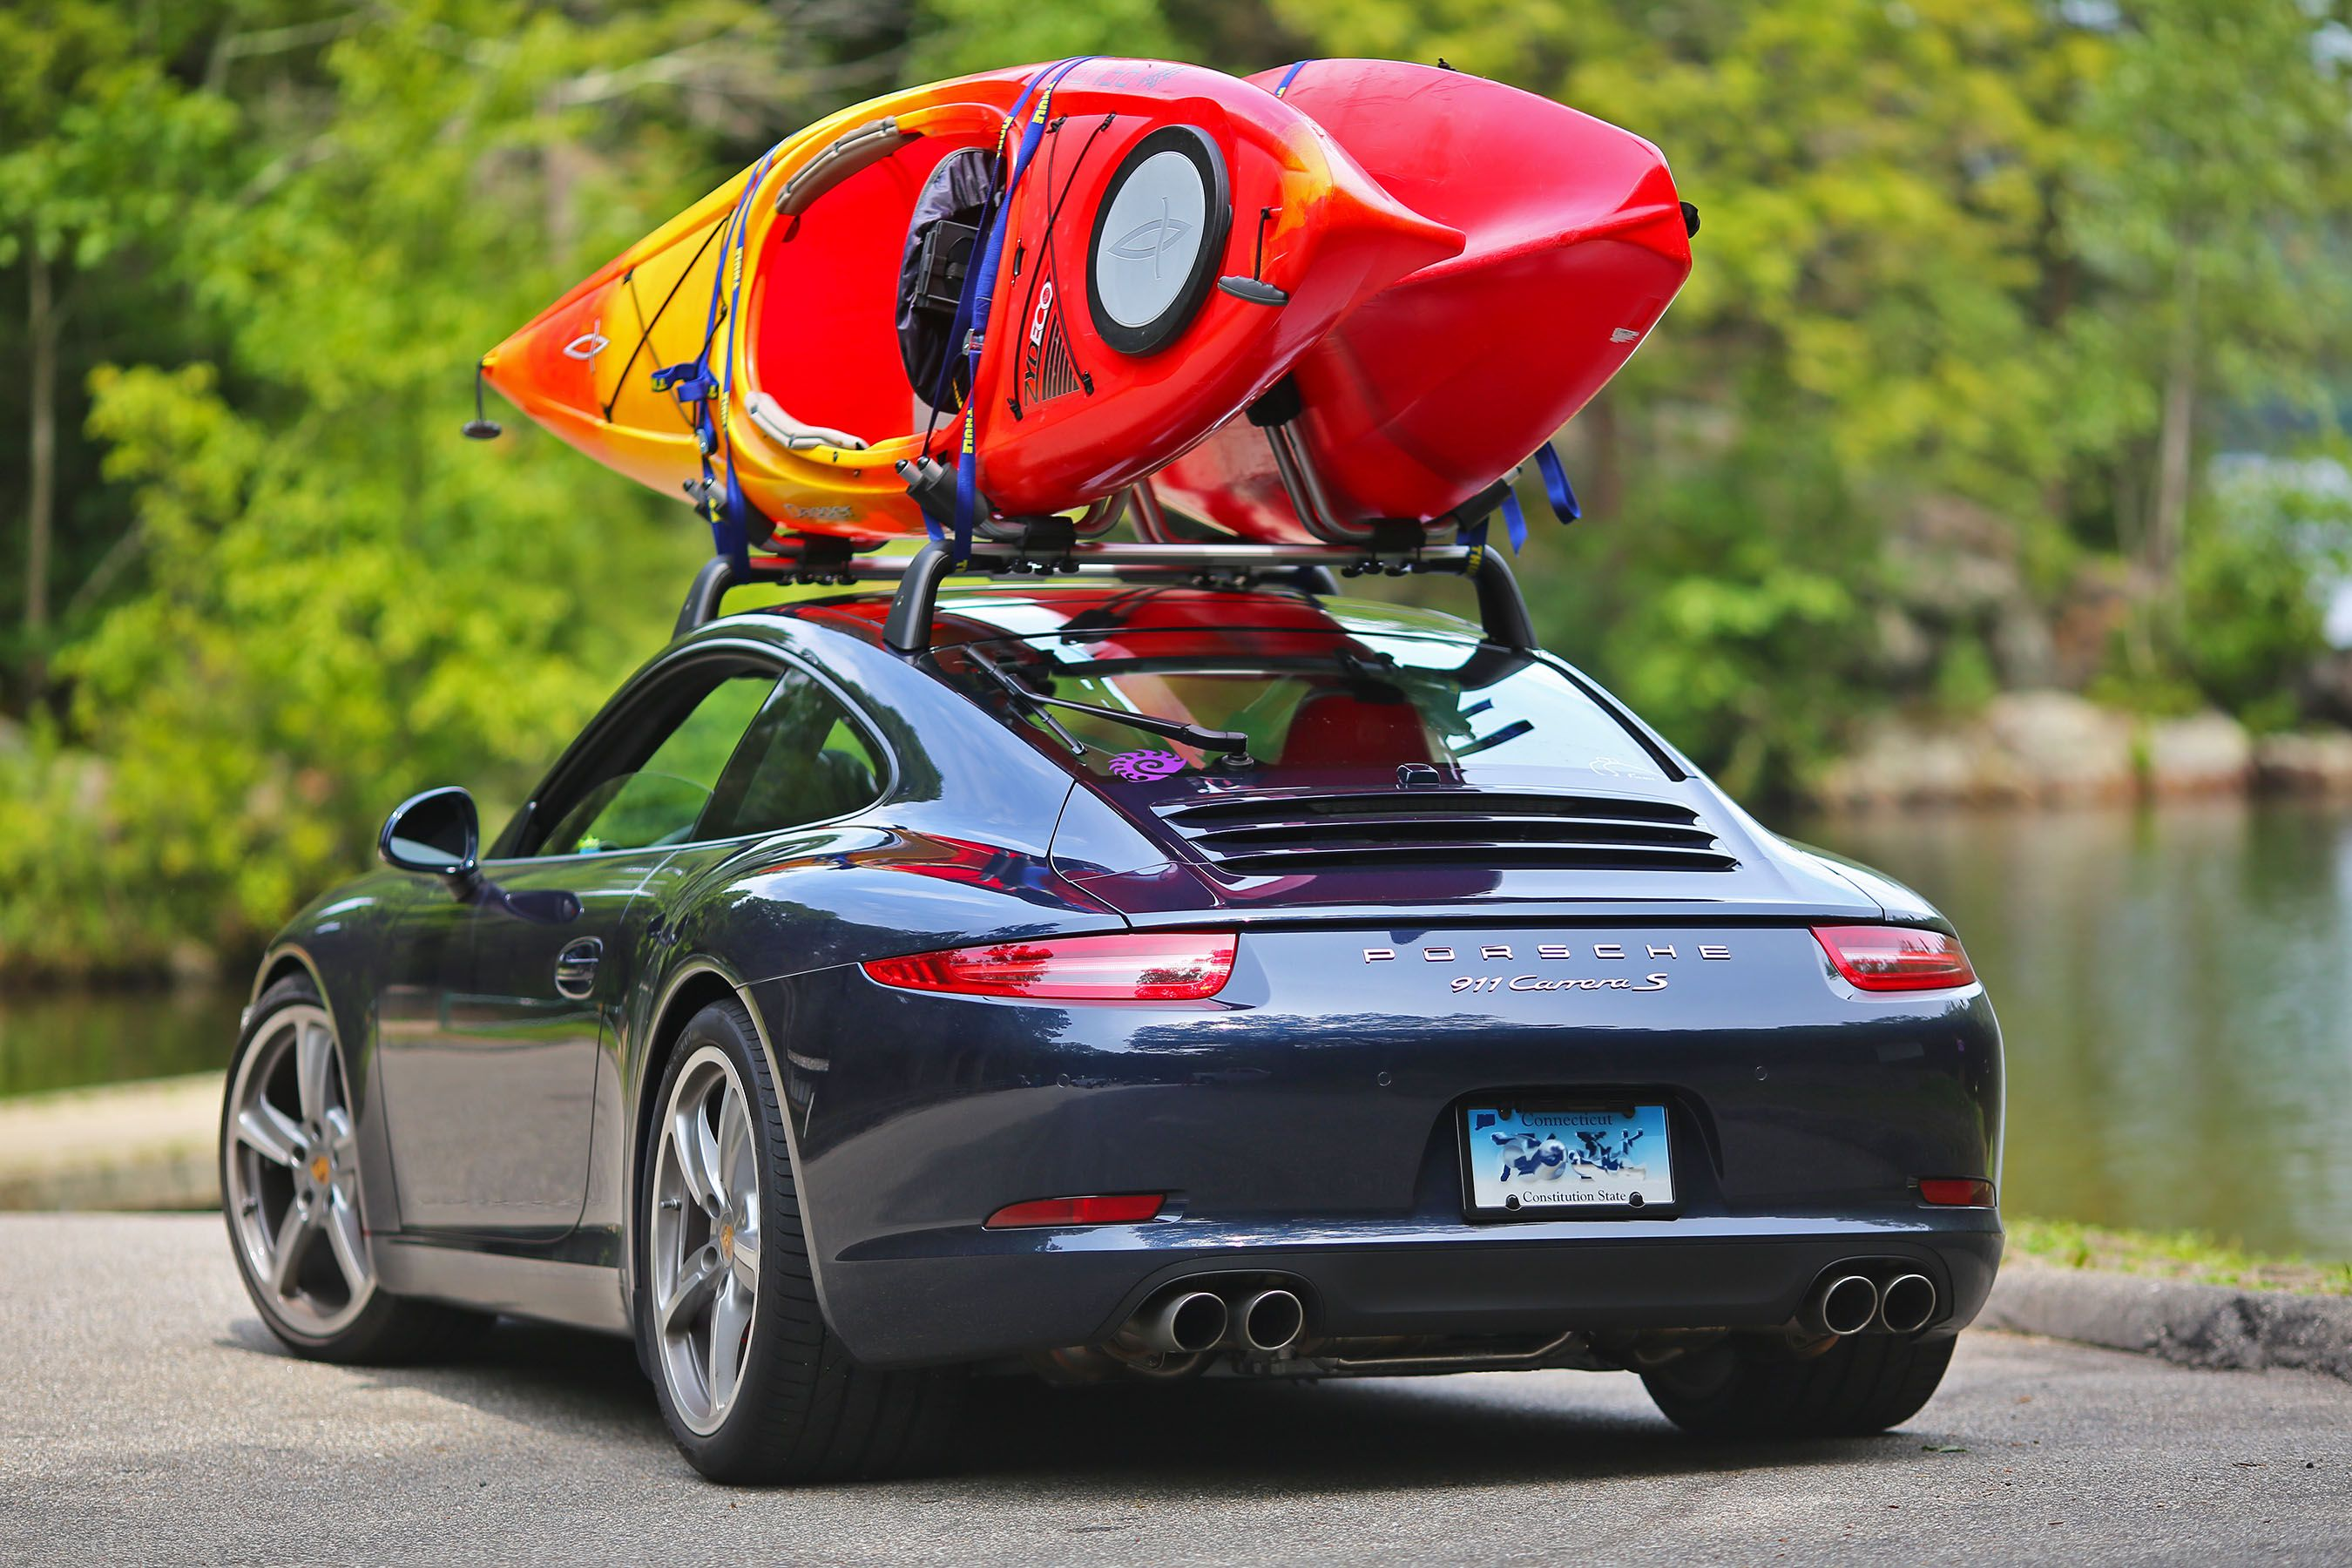 Roof Transport System Allowing Your 991 To Be The Minivan It Always Wanted To Be Mini Van Bike Transporting Toy Car